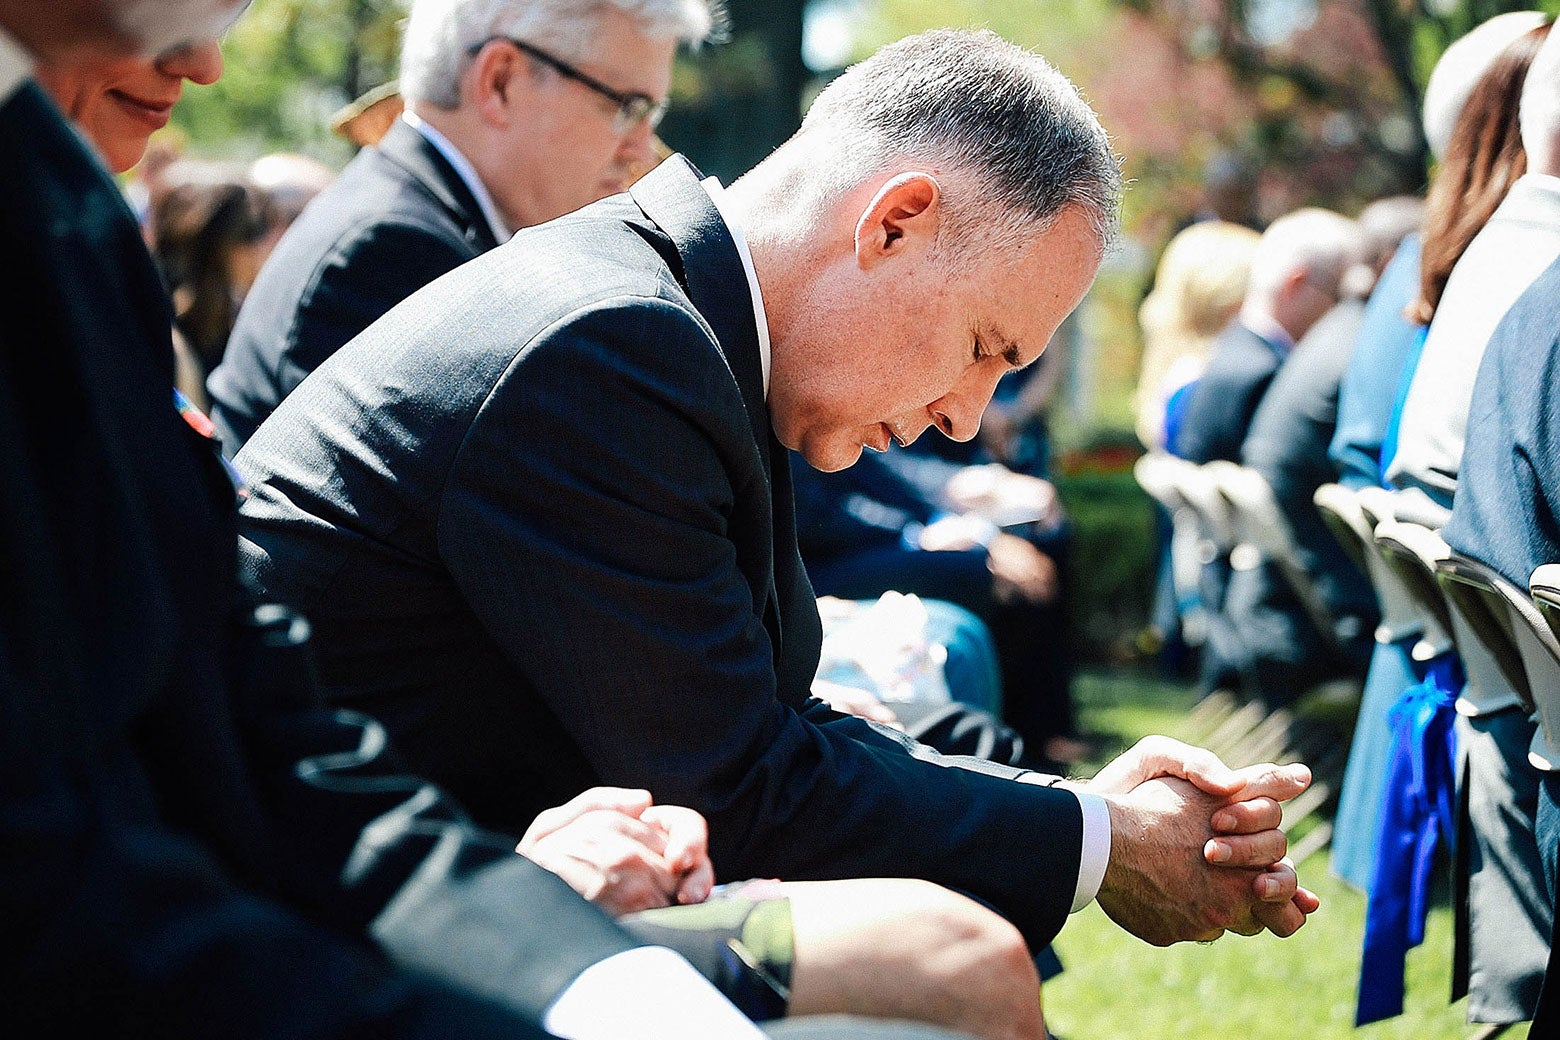 Environmental Protection Agency Administrator Scott Pruitt bows his head in prayer during an event to mark the National Day of Prayer on May 3 in Washington.